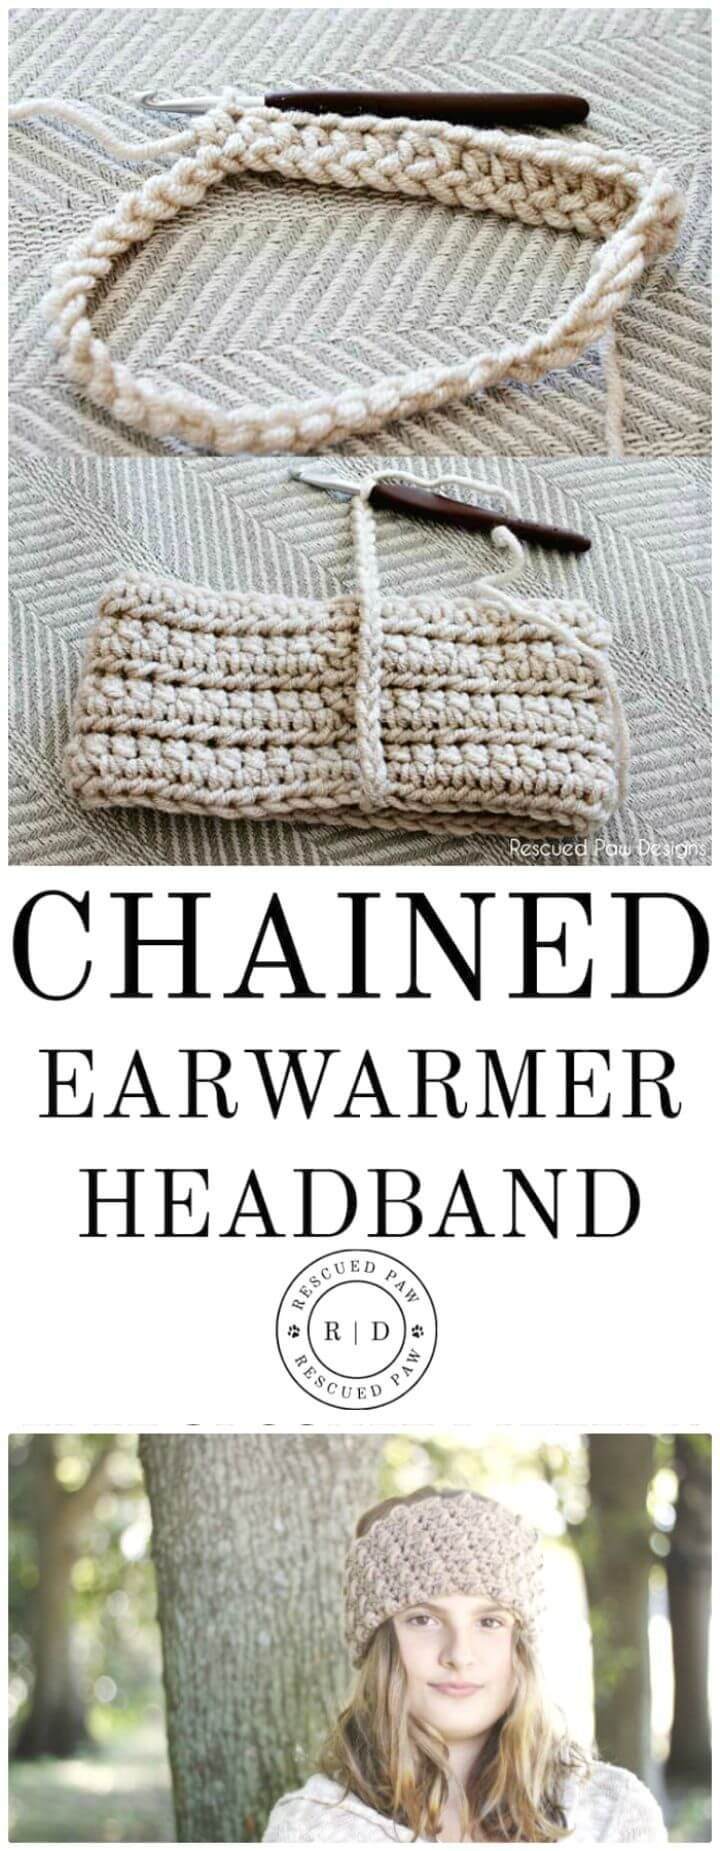 46 Free Crochet Headband Patterns to Try This Weekend | TEJIDO ...